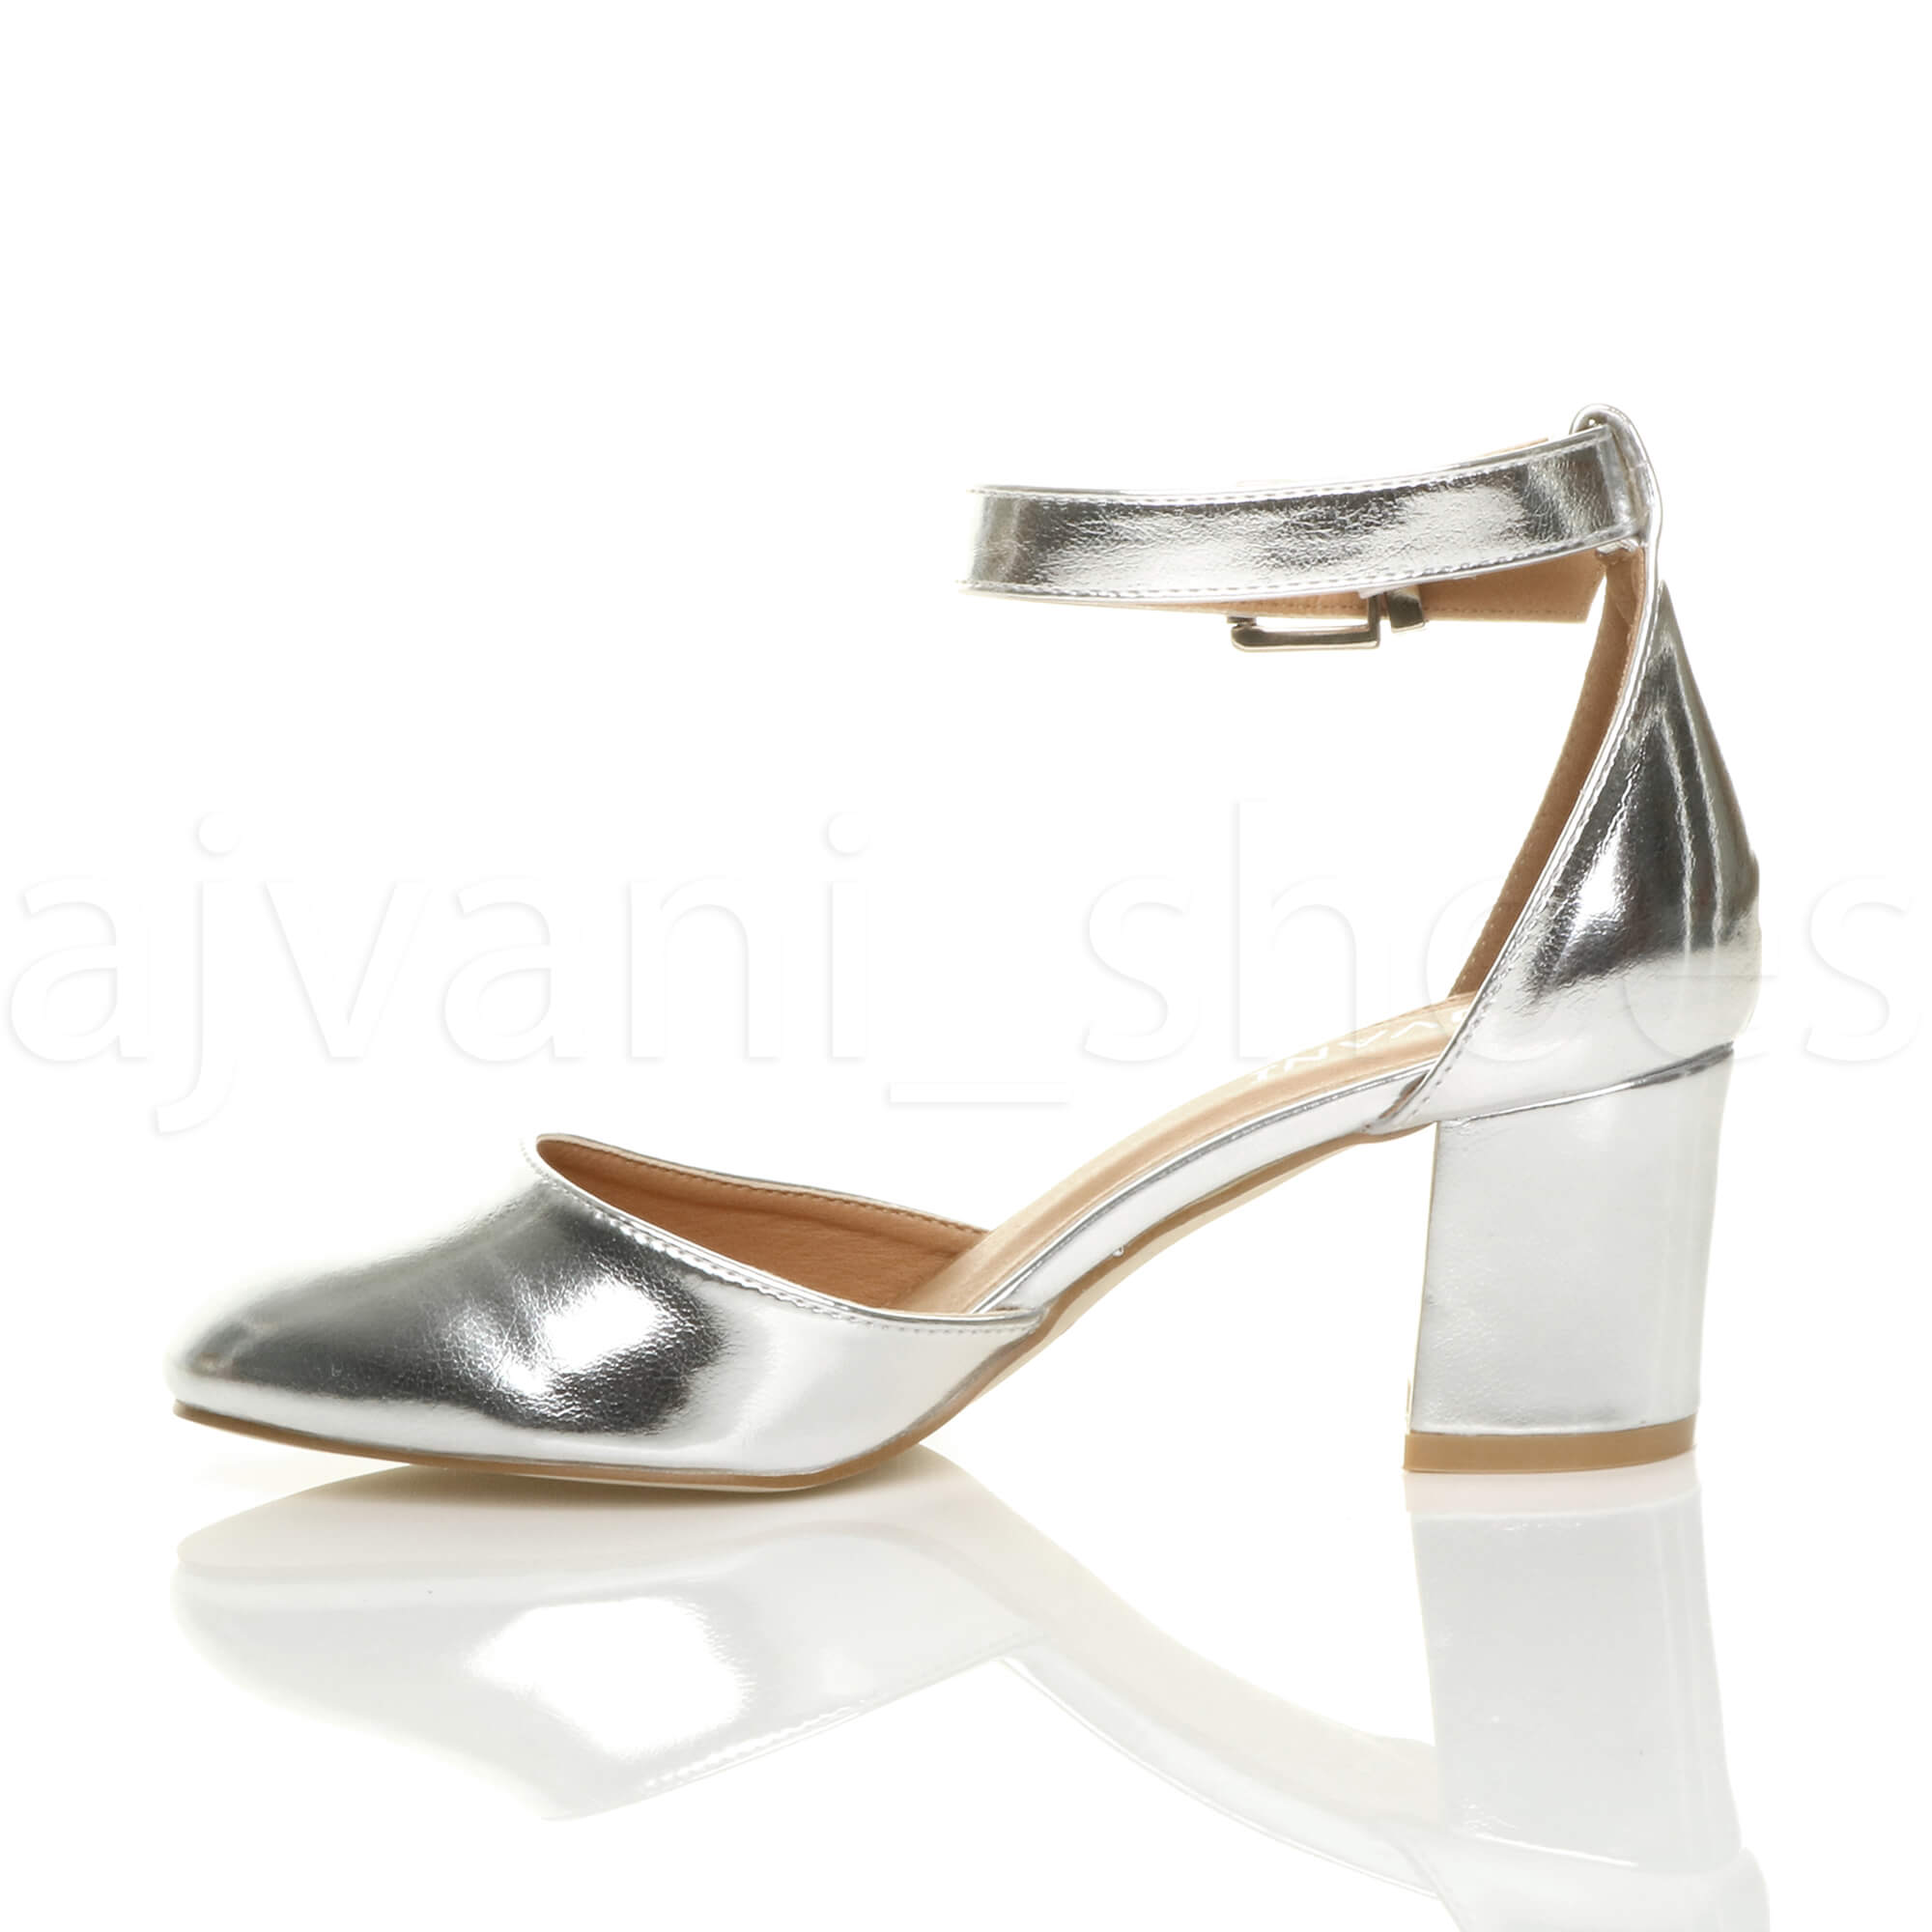 WOMENS-LADIES-LOW-MID-BLOCK-HEEL-ANKLE-STRAP-MARY-JANE-COURT-SHOES-SANDALS-SIZE thumbnail 172